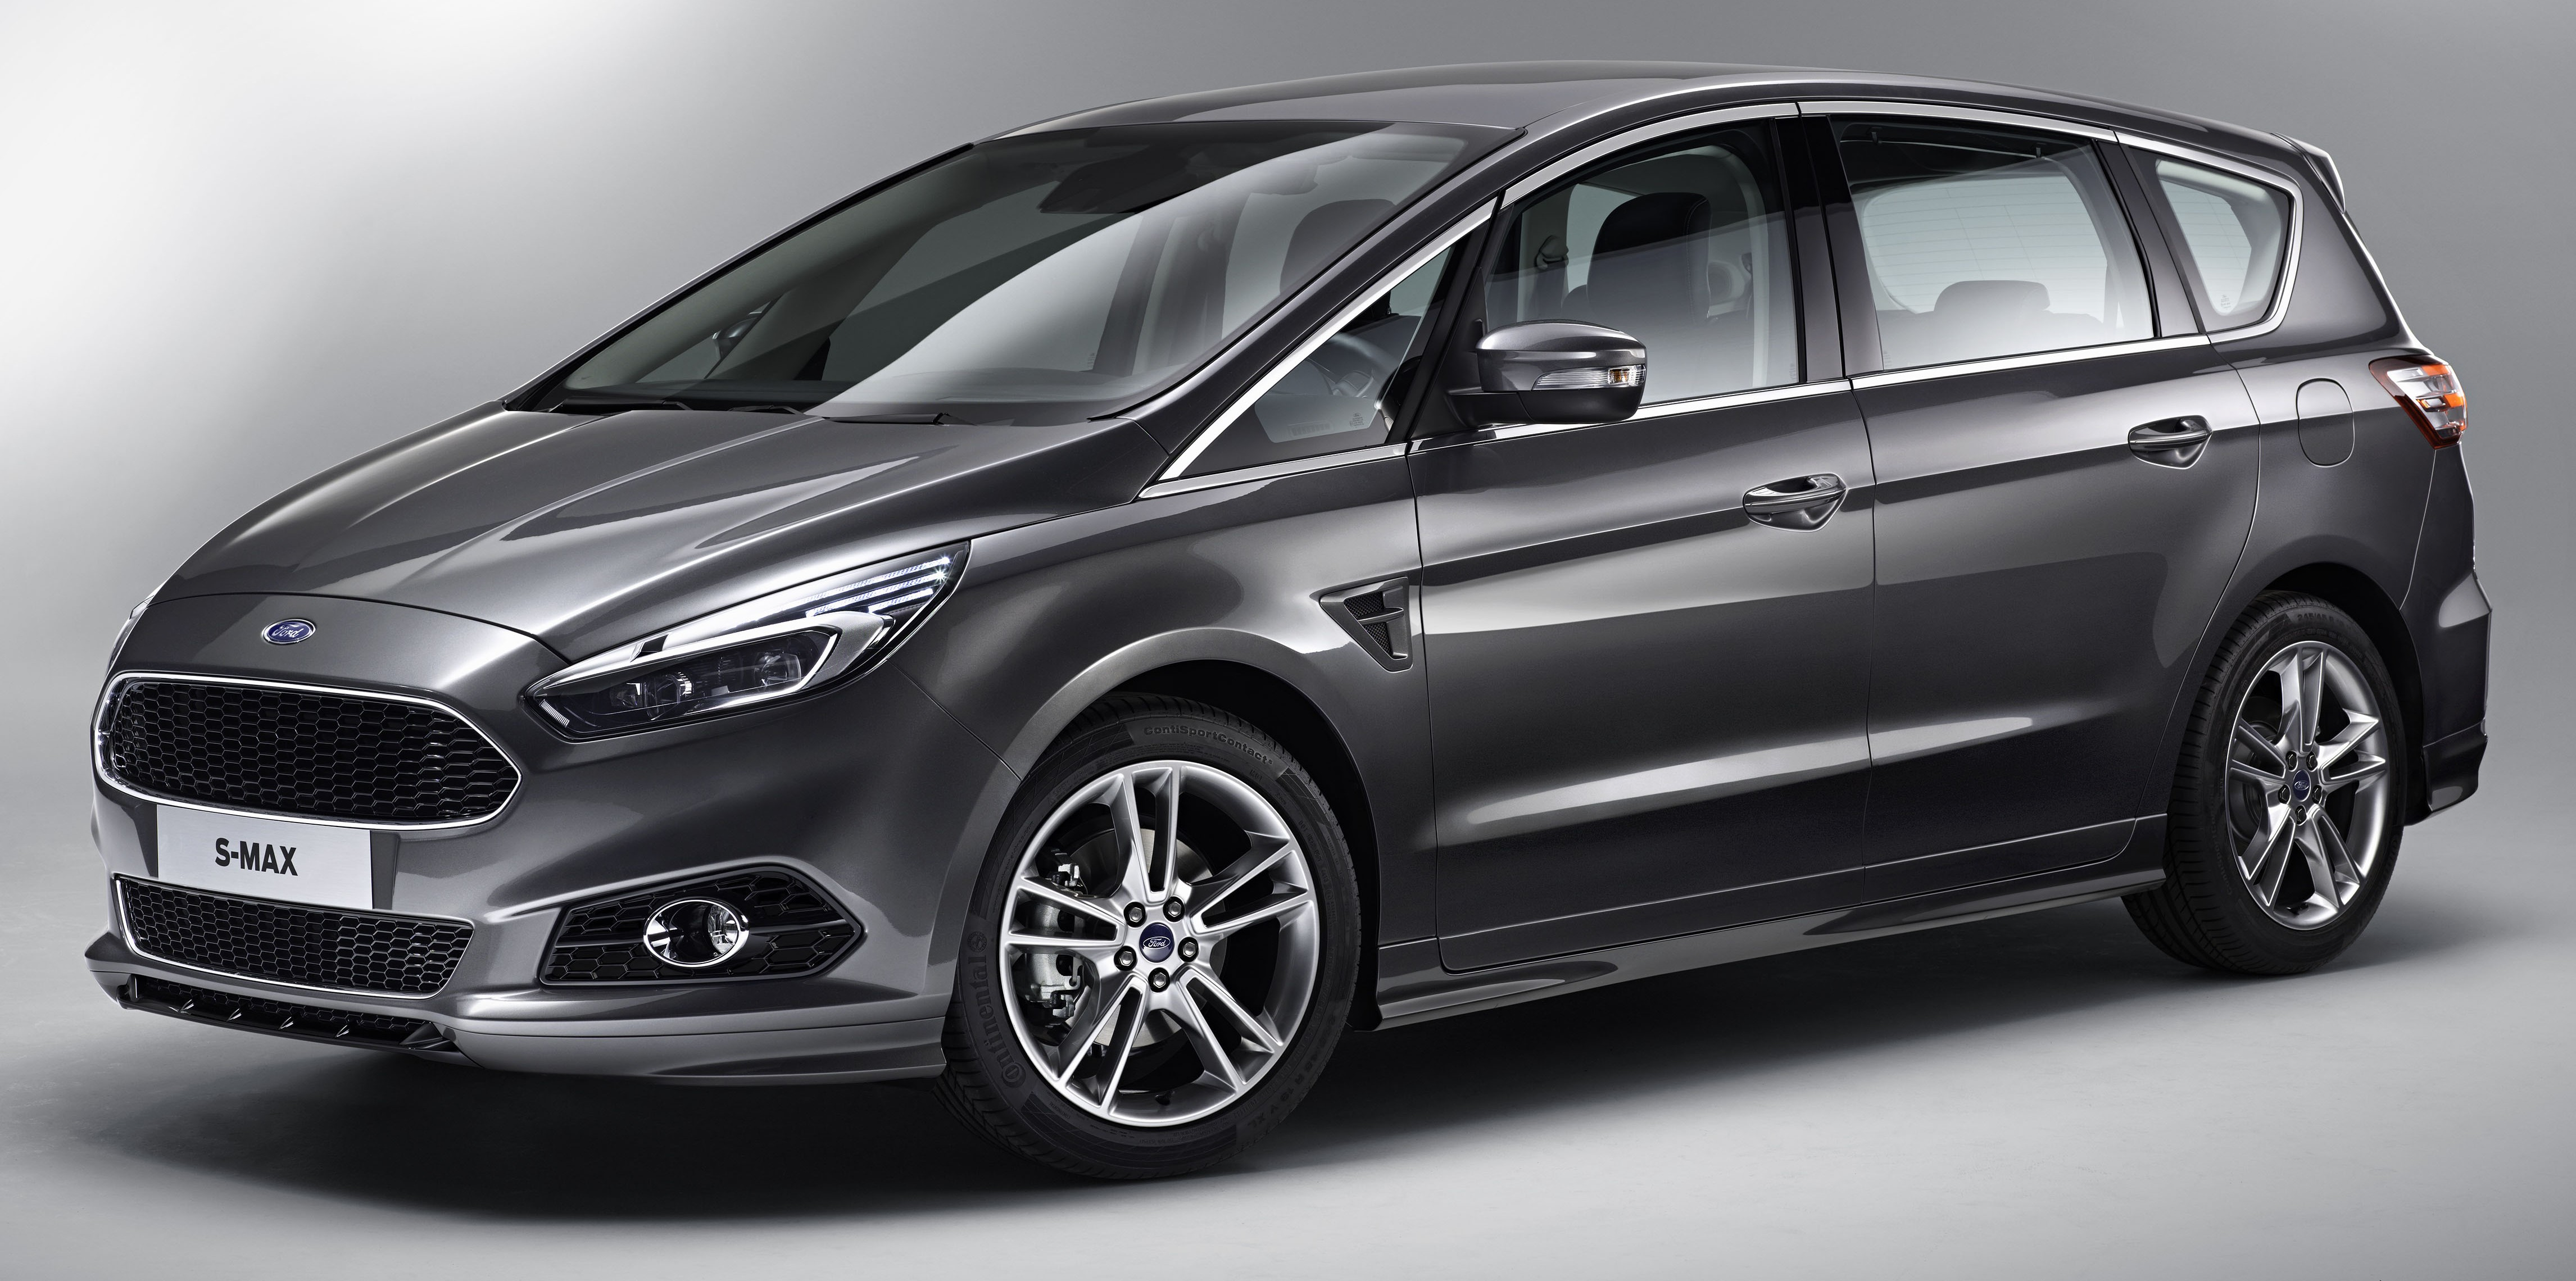 second generation ford s max uk prices confirmed. Black Bedroom Furniture Sets. Home Design Ideas